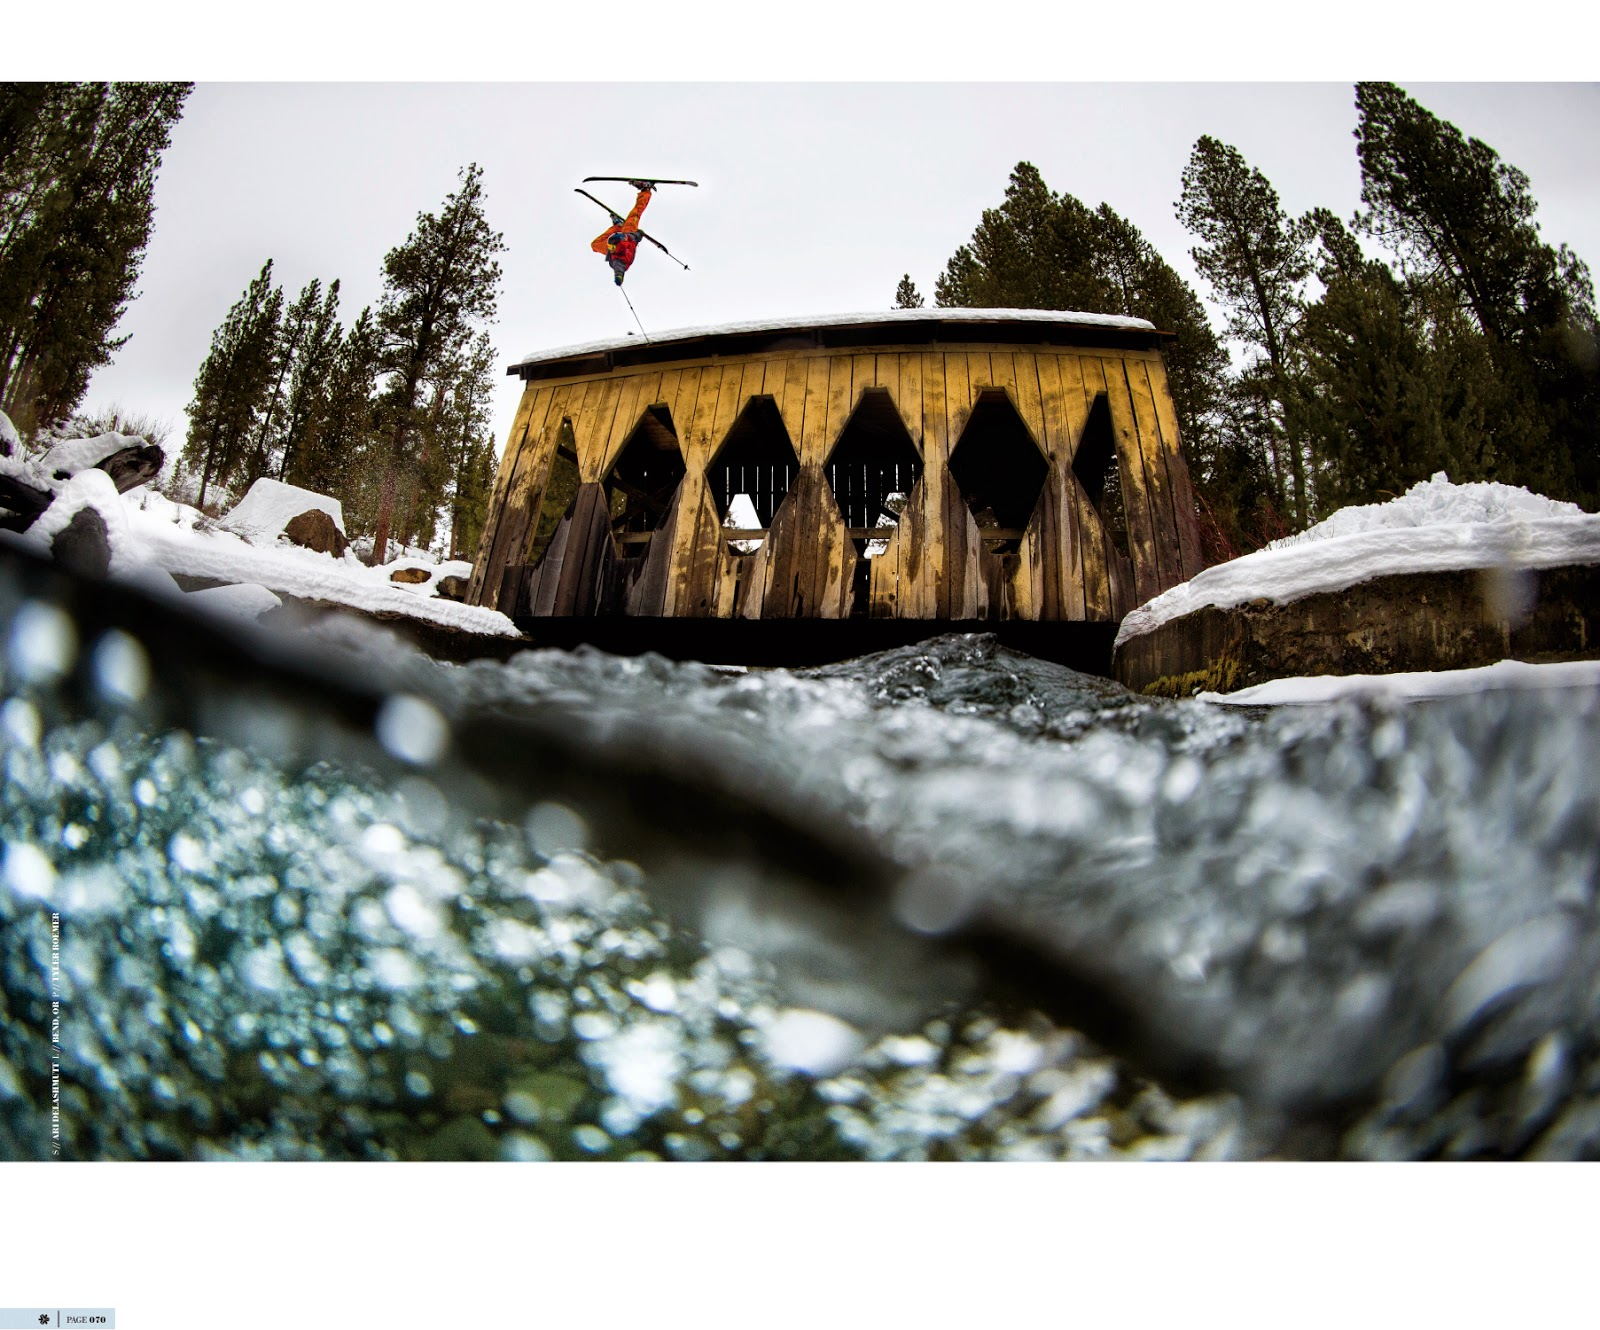 Skier Ari Delashmutt airs over the Shevlin Bridge at Shevlin Park in Bend Oregon.